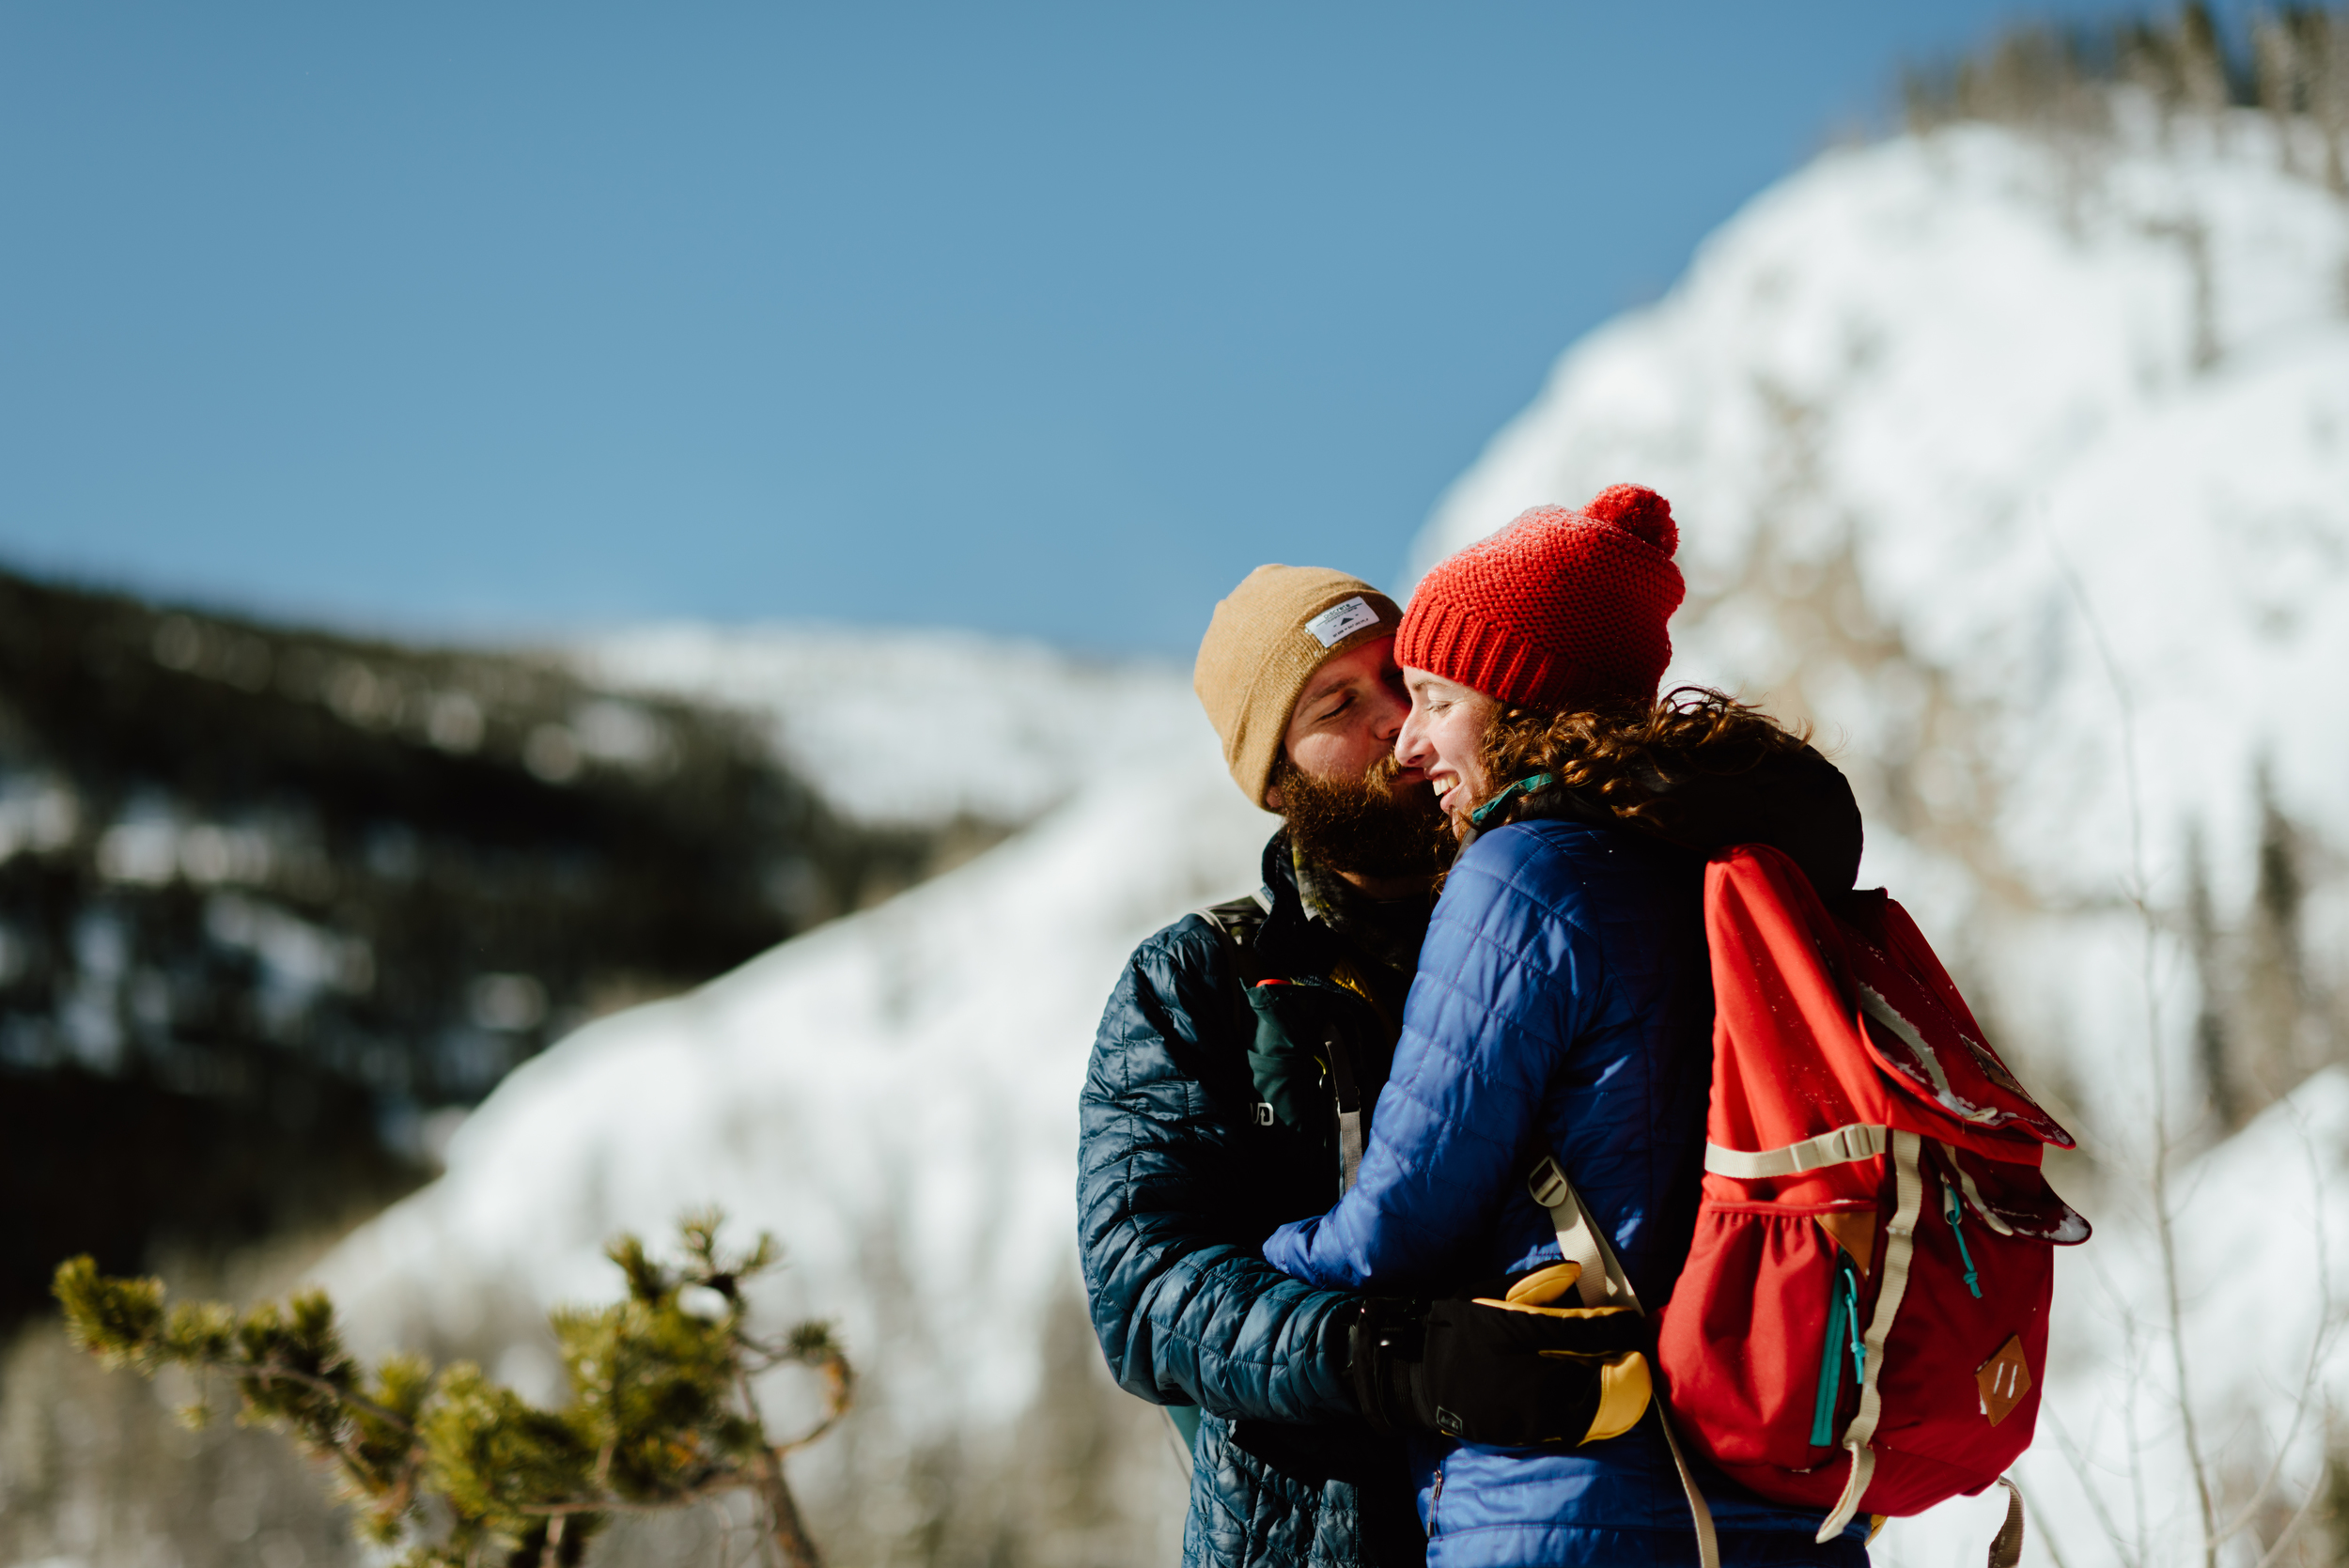 Hannah and Nick really did it right by hiking up in Indian Peaks Wilderness Area and snowshoeing for their romantic and intimate engagement photoshoot! I definitely want to throw on my hiking boots and do something similar with my fiancé!| Intimate engagement photos by Colorado engagement photographer, Maddie Mae.